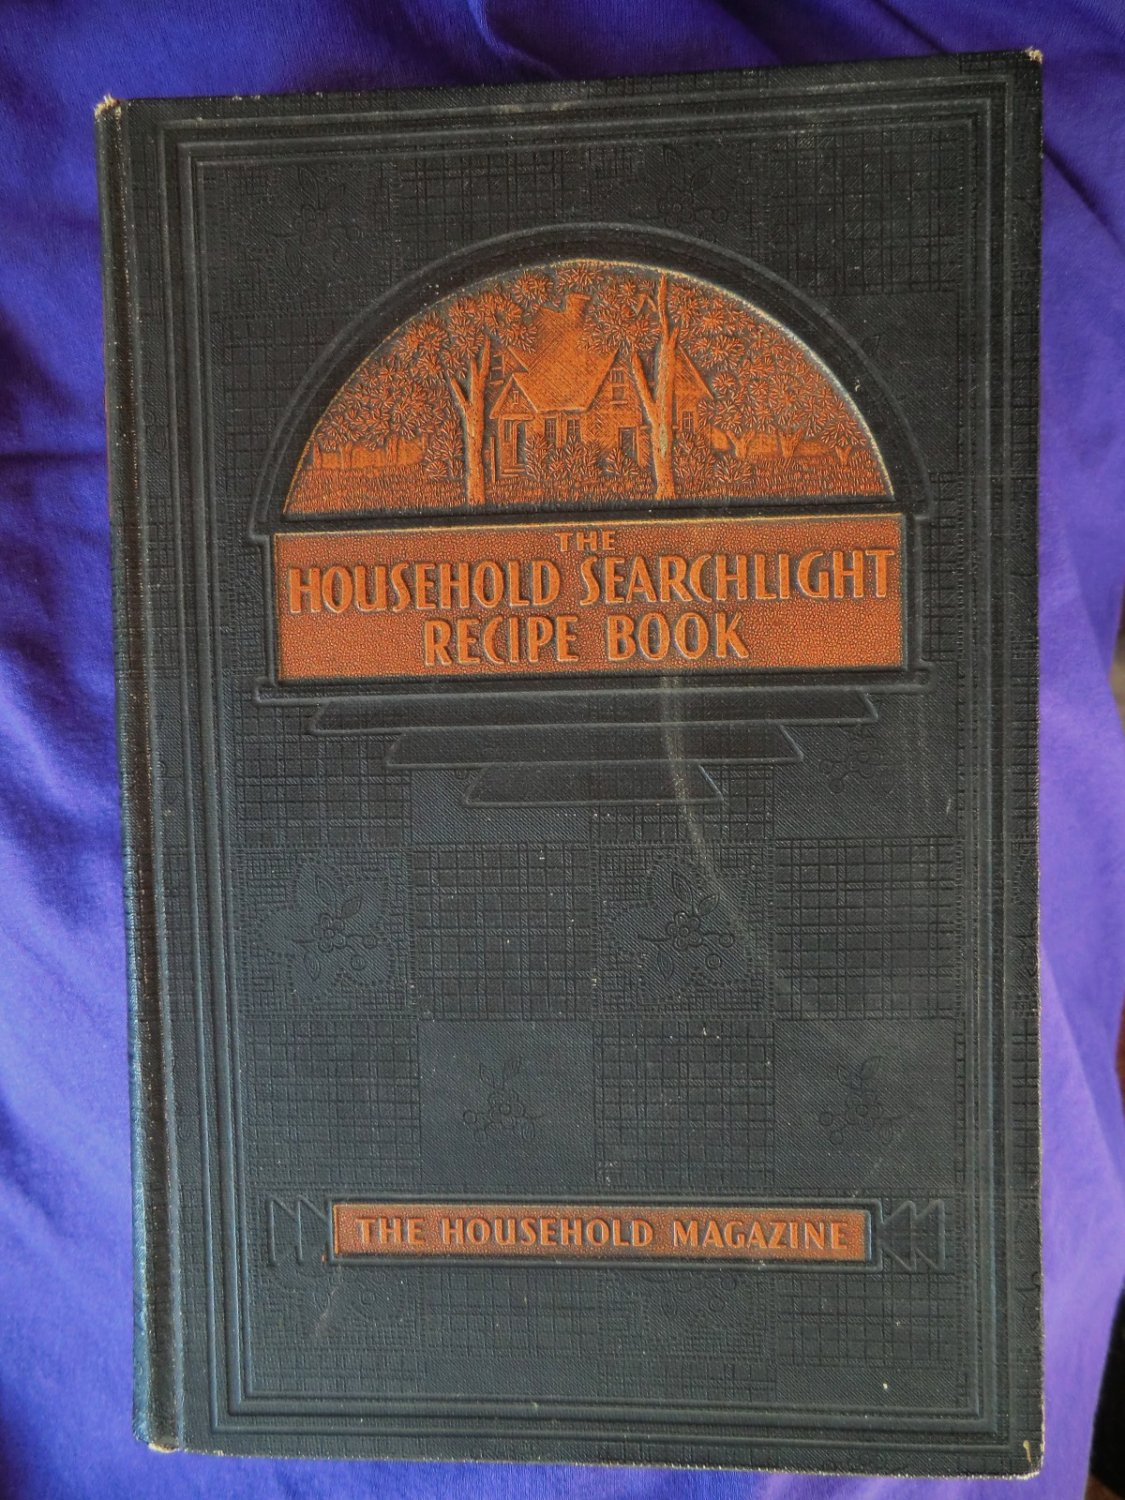 Sold Vintage 1939 Household Searchlight Recipe Book